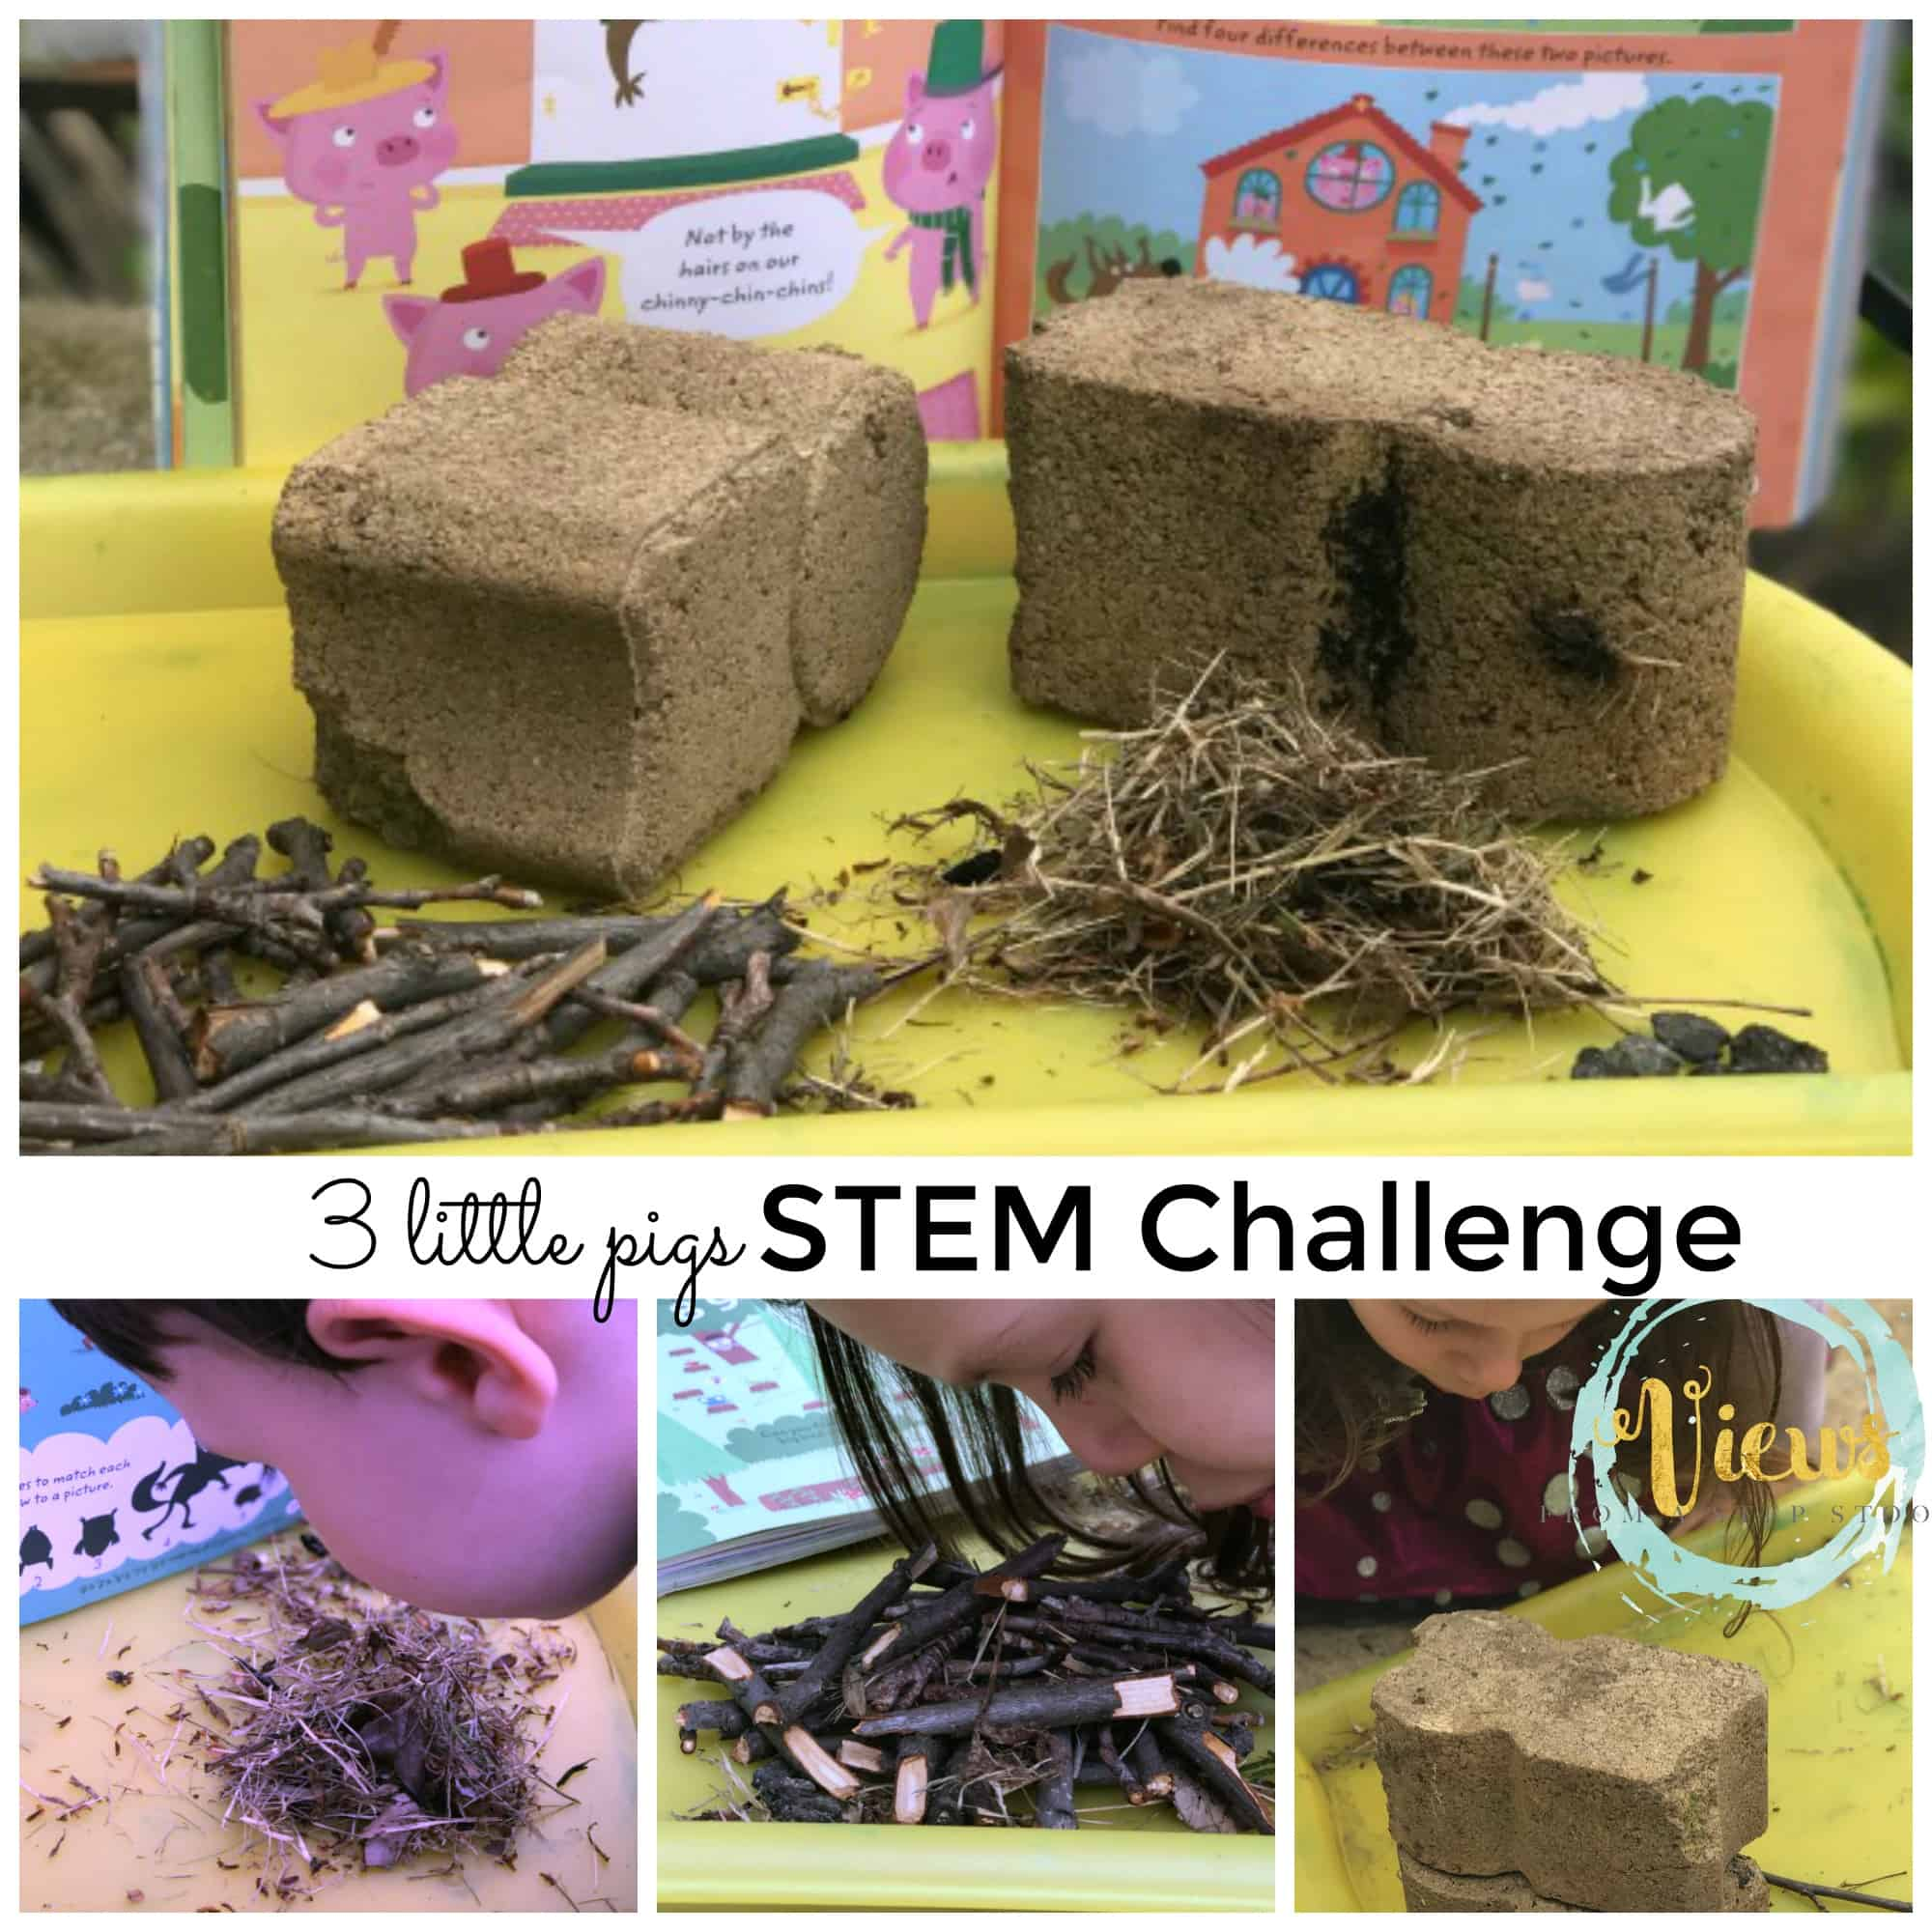 3 pigs STEM challenge square collage